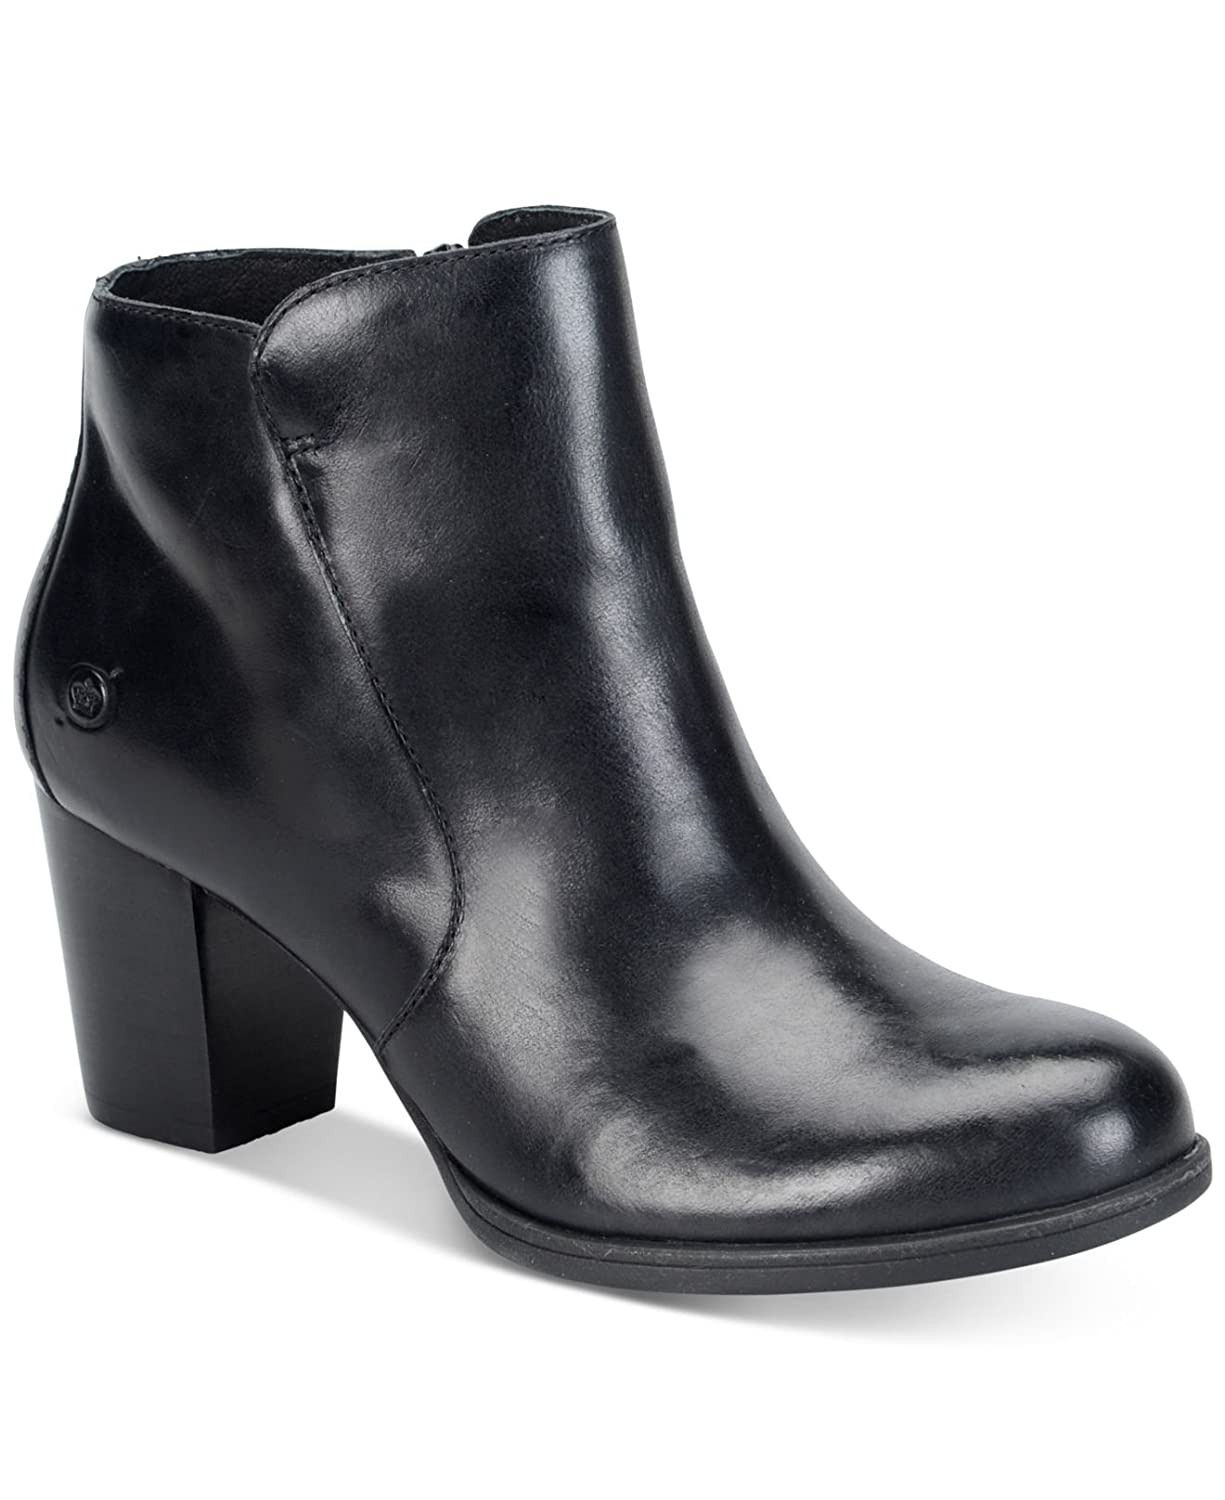 Born Womens Alter Leather Almond Toe Ankle Fashion Boots, Black, Size 8.5 -